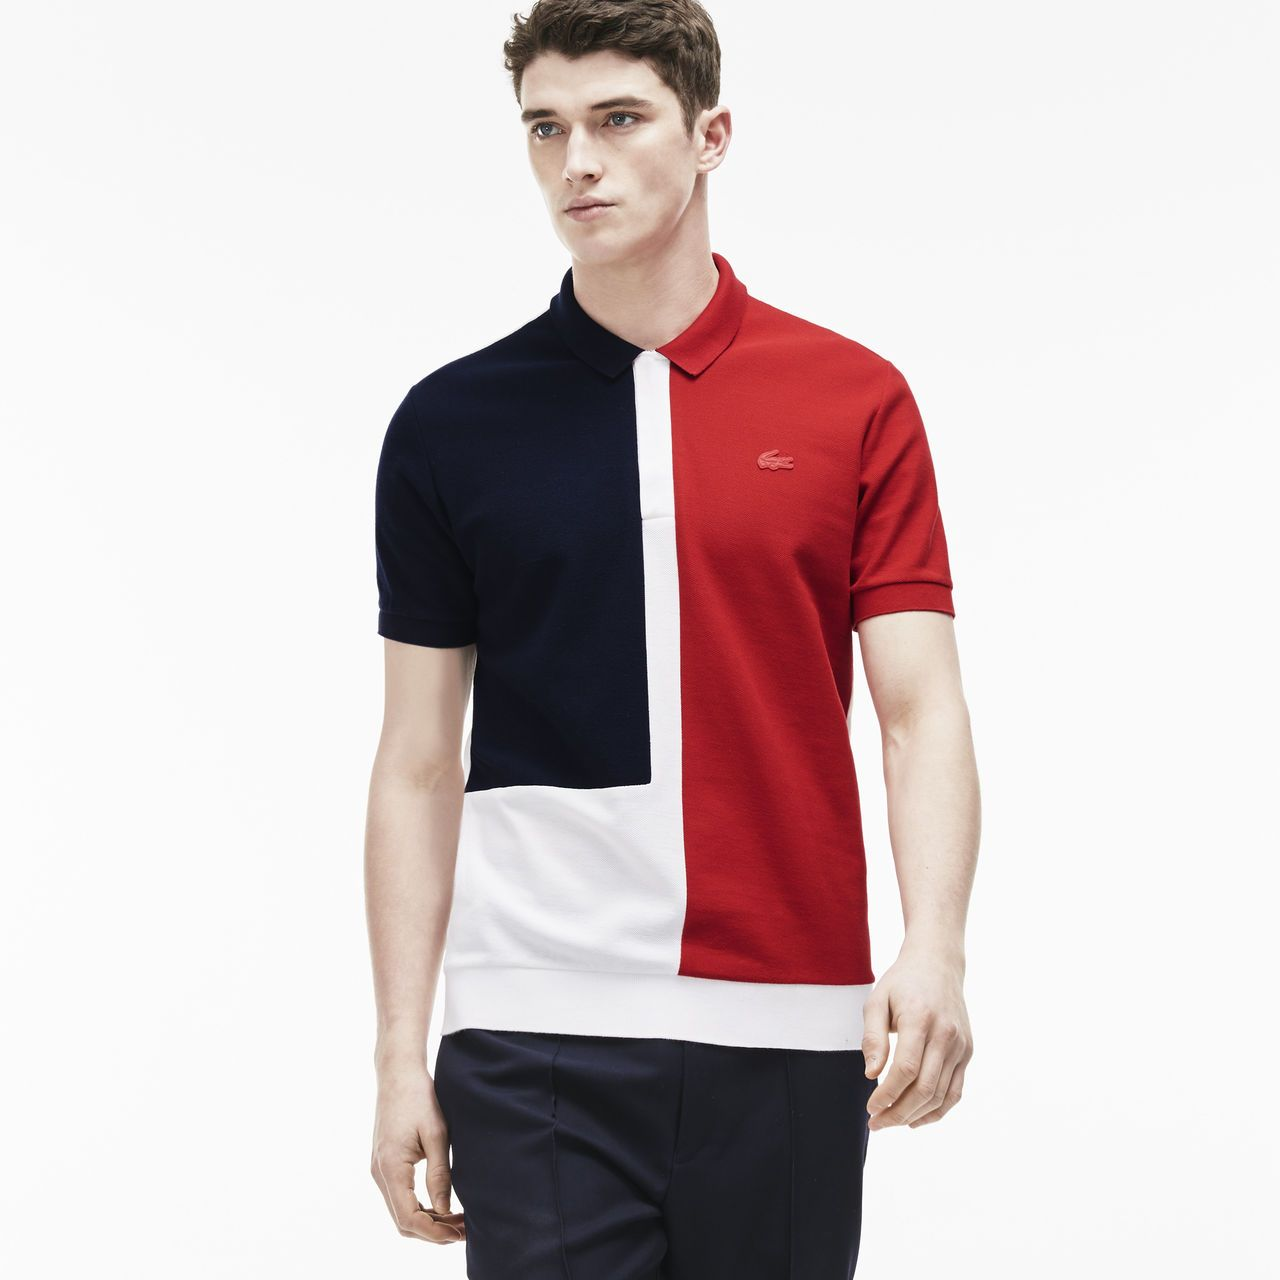 0d7588582fcc1 Lacoste France Fashion show zippered polo in color block noppe piqué ...